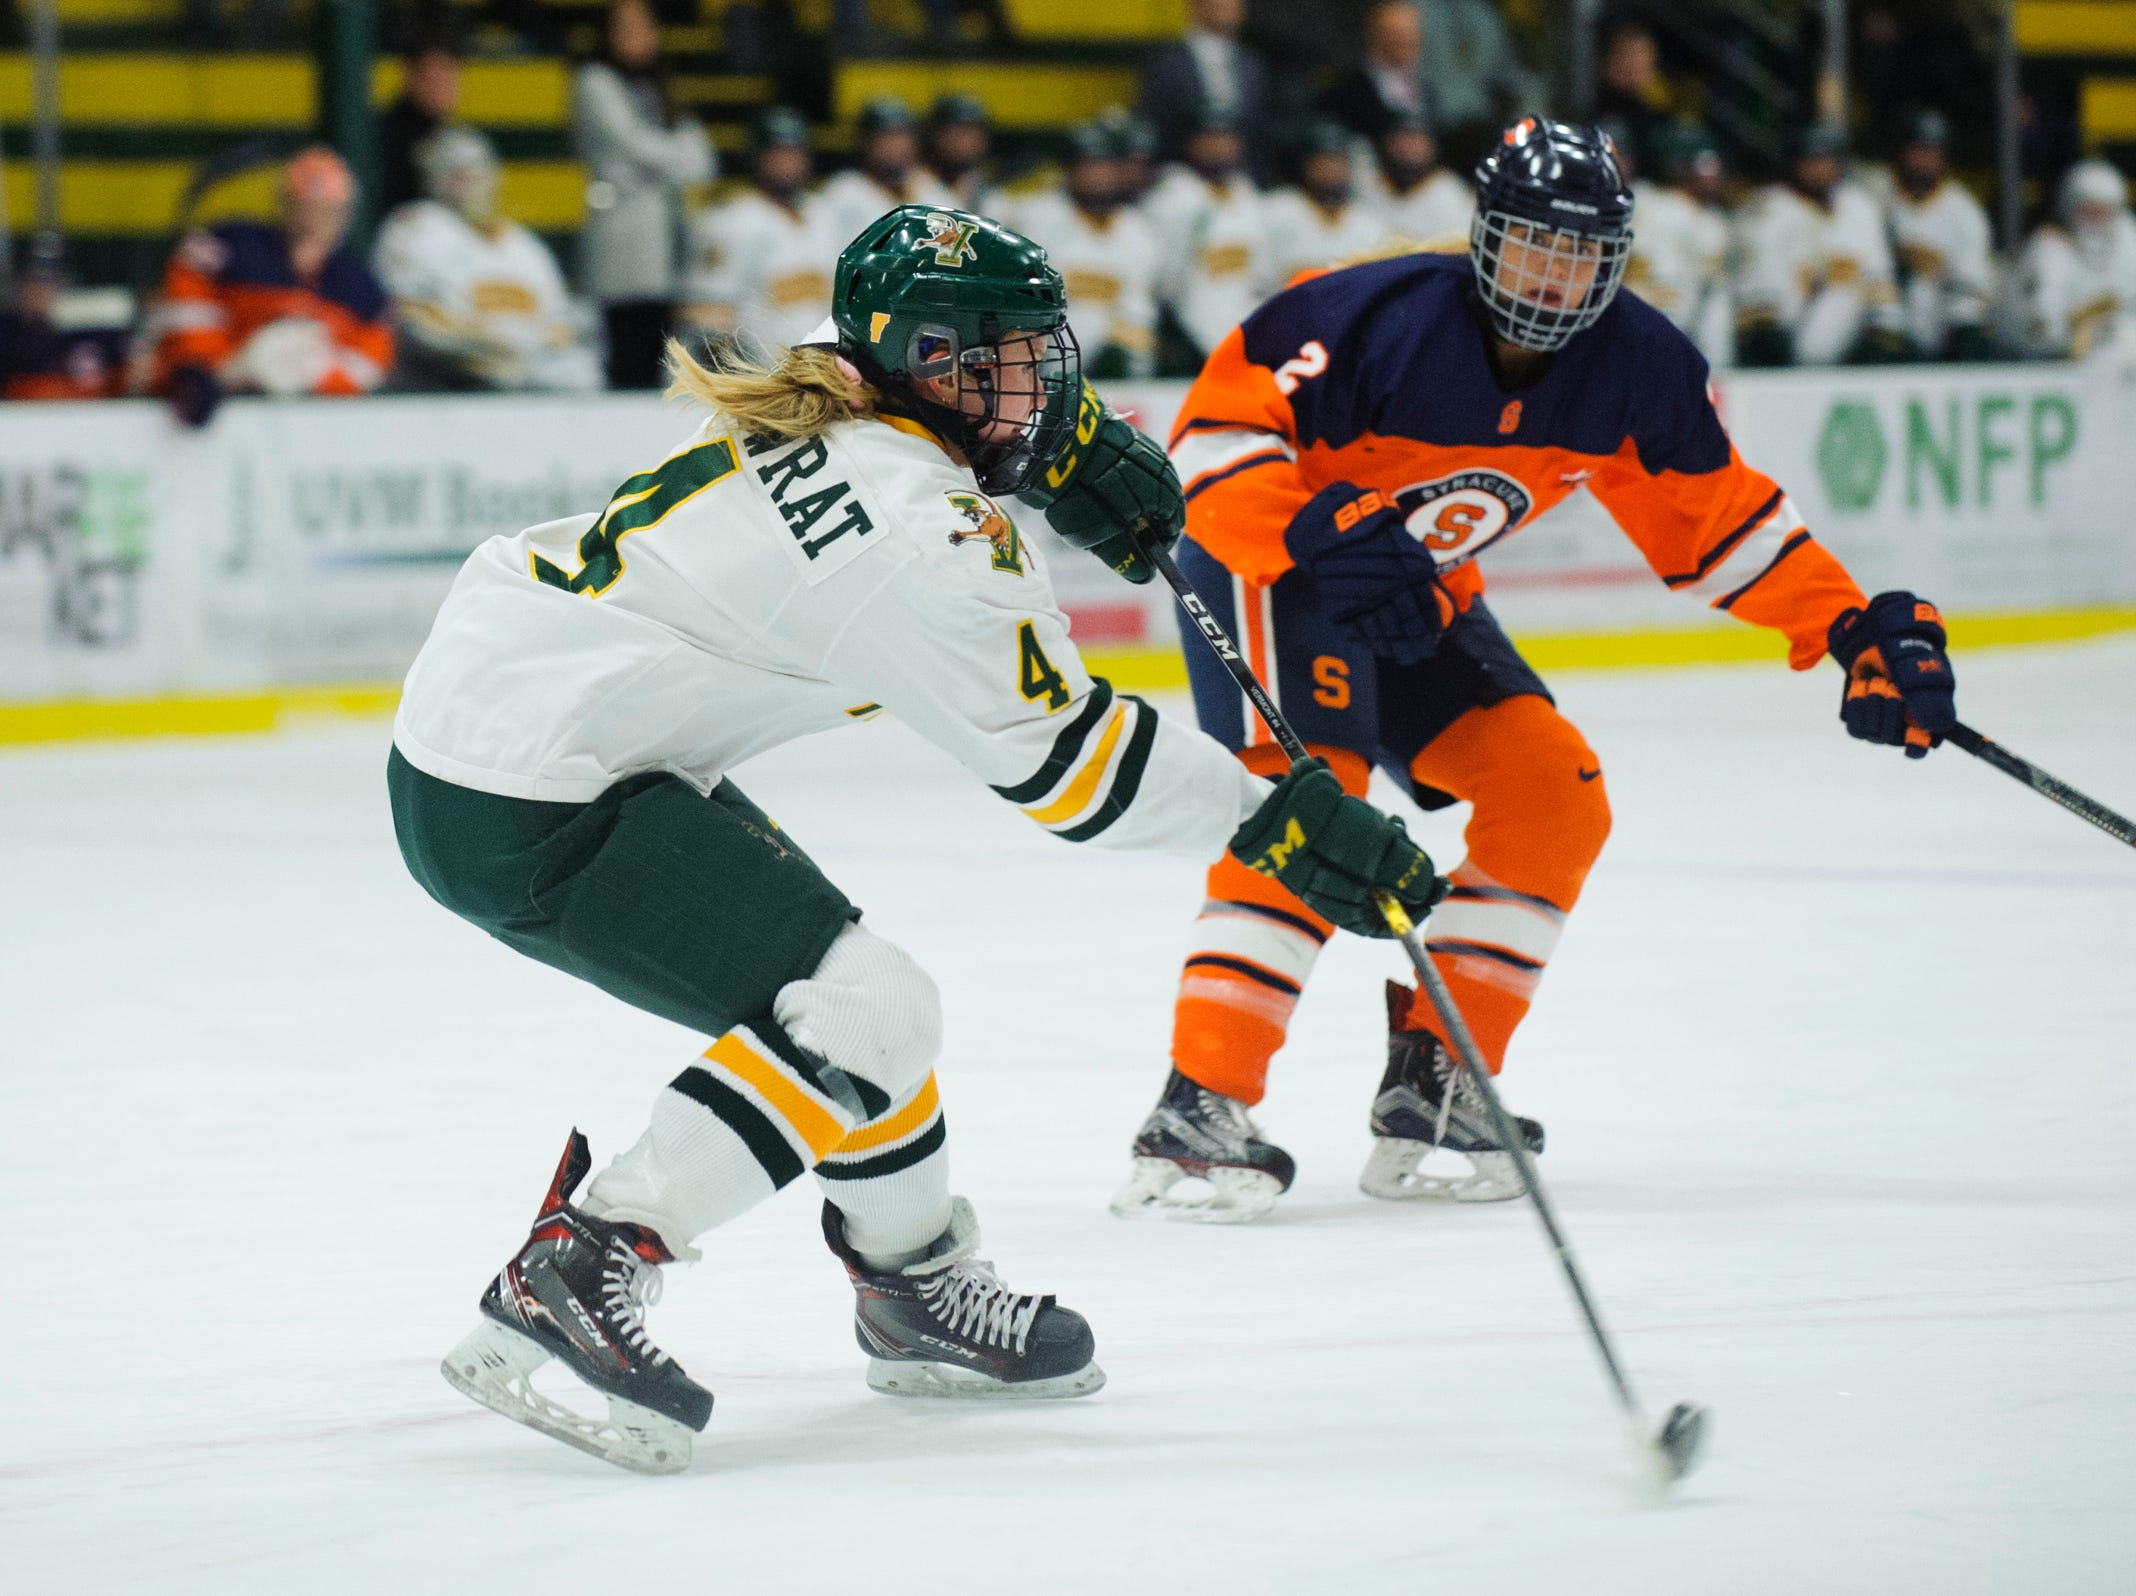 Vermont's Sammy Kolowart (4) shoots the puck down the ice during the women's hockey game between the Syracuse Orange and the Vermont Catamounts at Gutterson Field House on Friday night November 23, 2018 in Burlington.